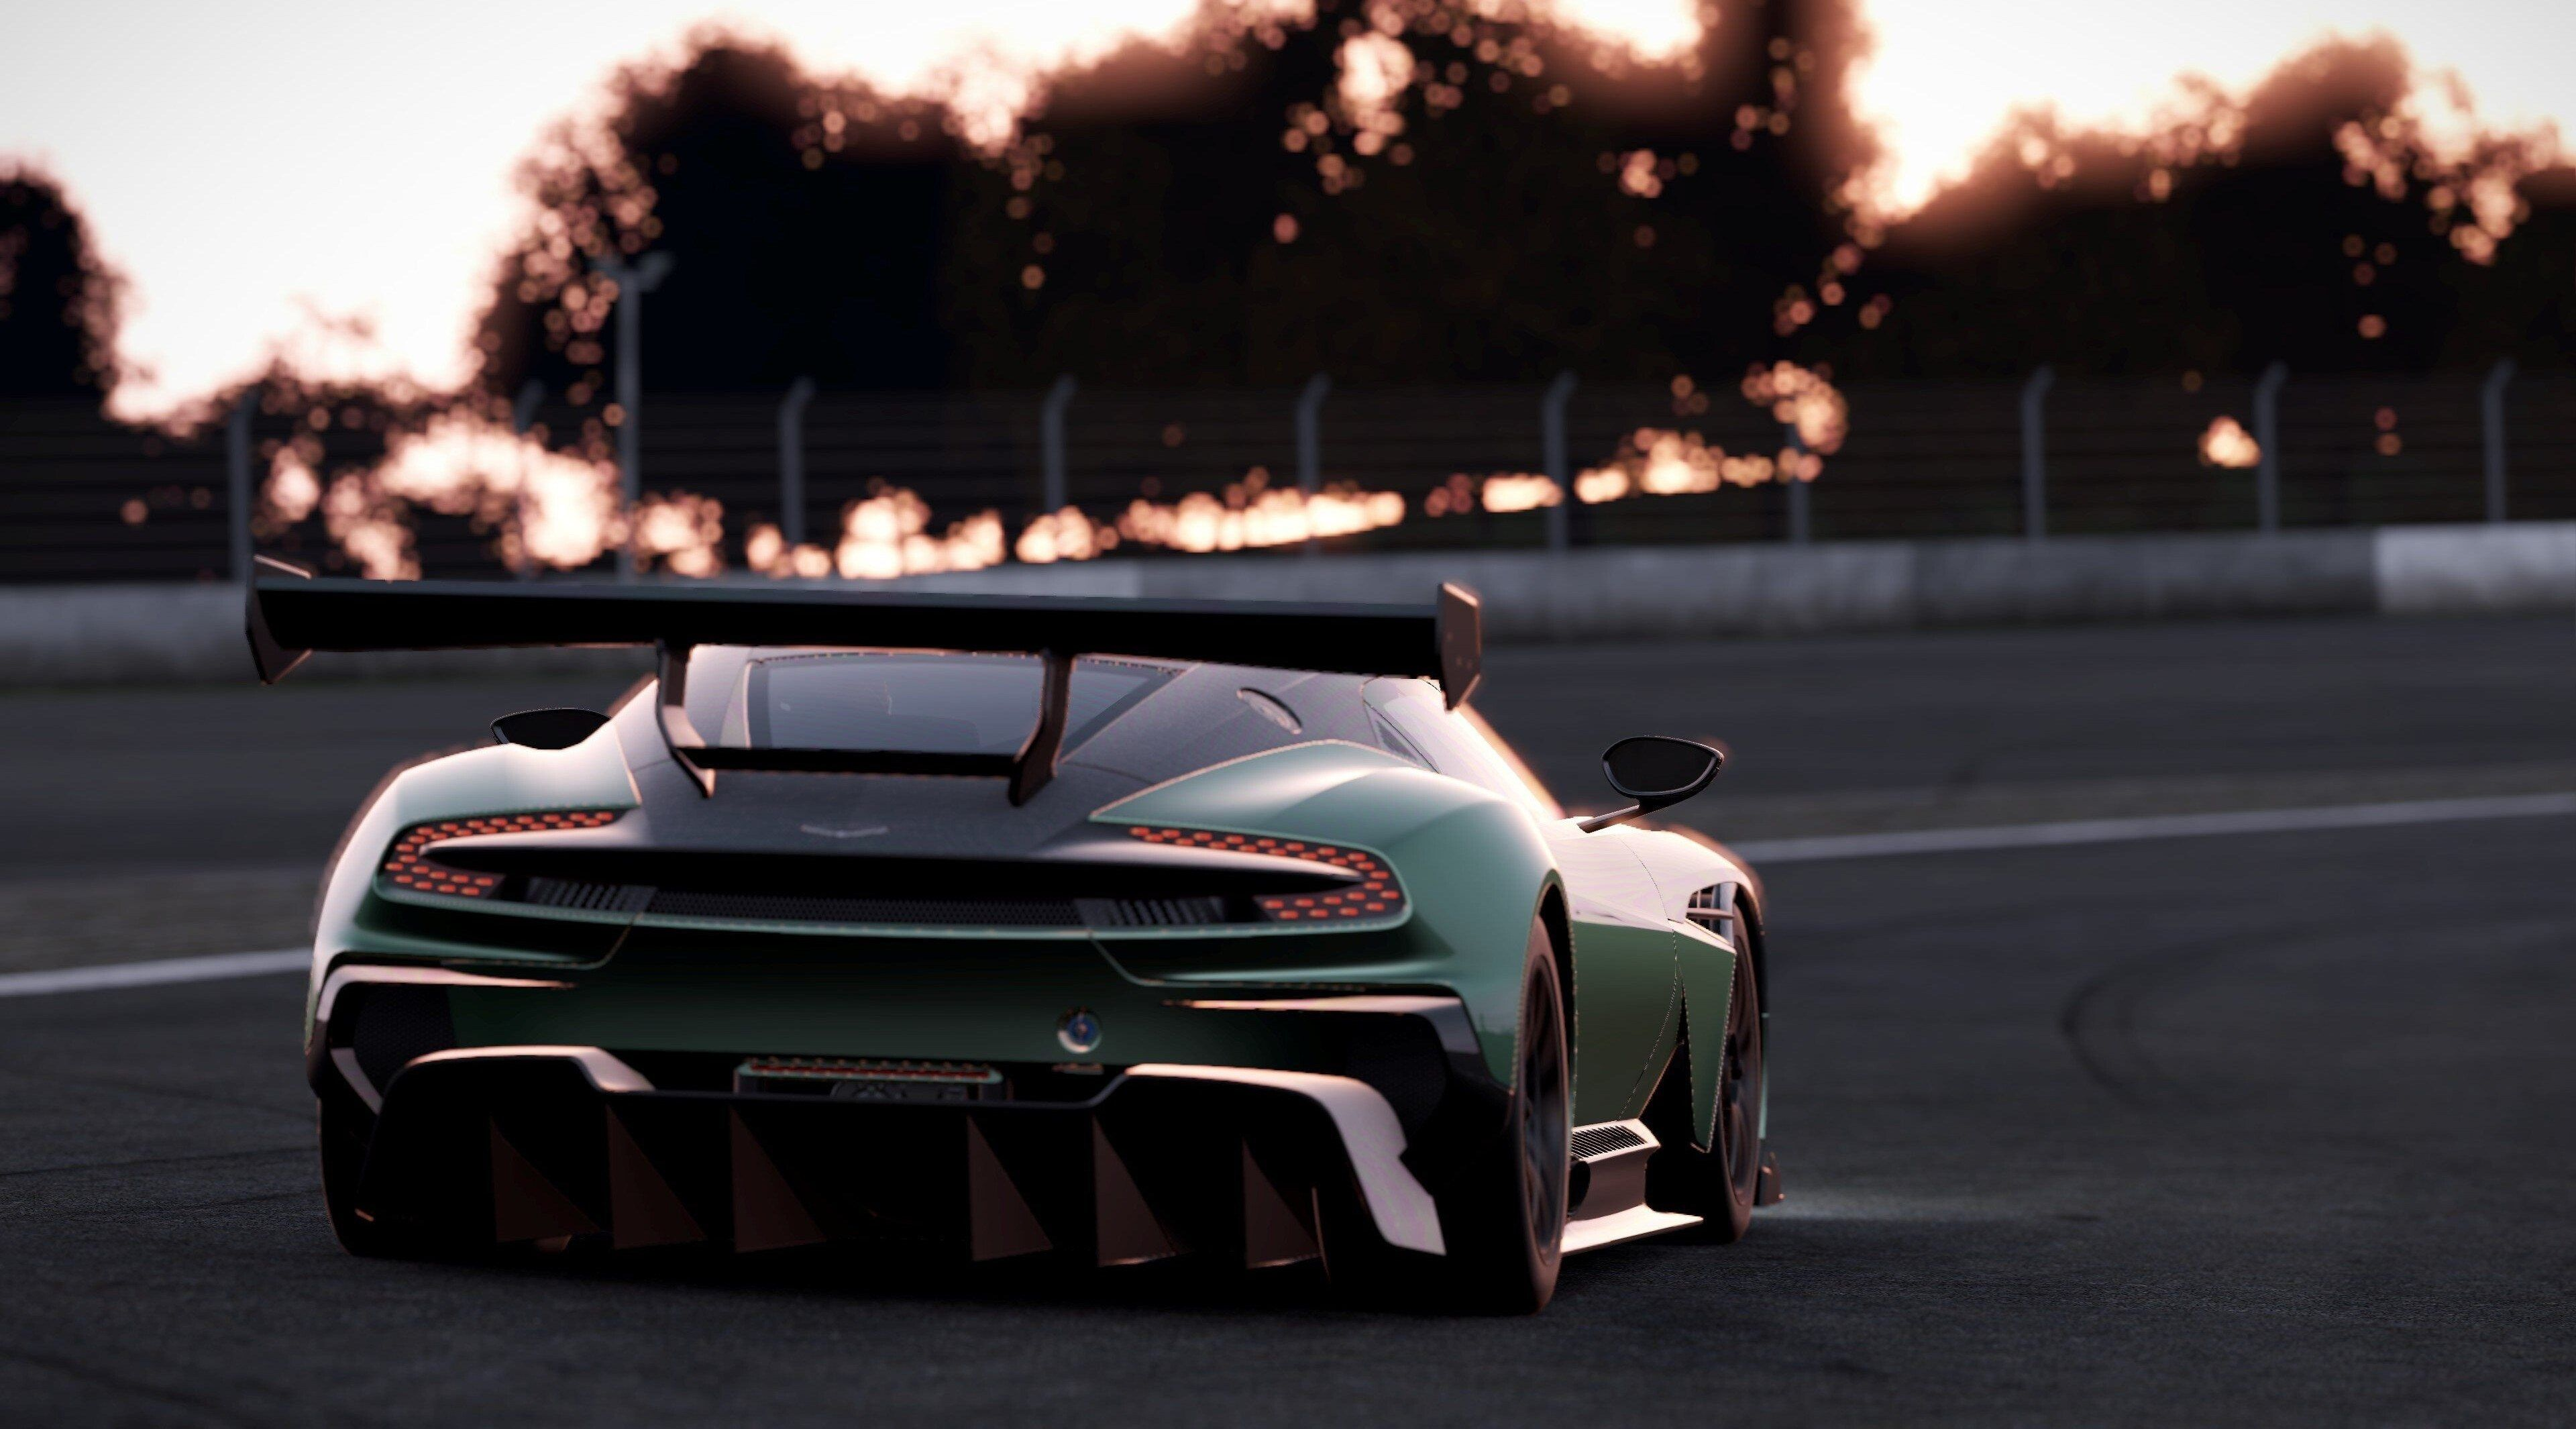 3840x2130 Project Cars 2 4k New Wallpaper Hd For Desktop With